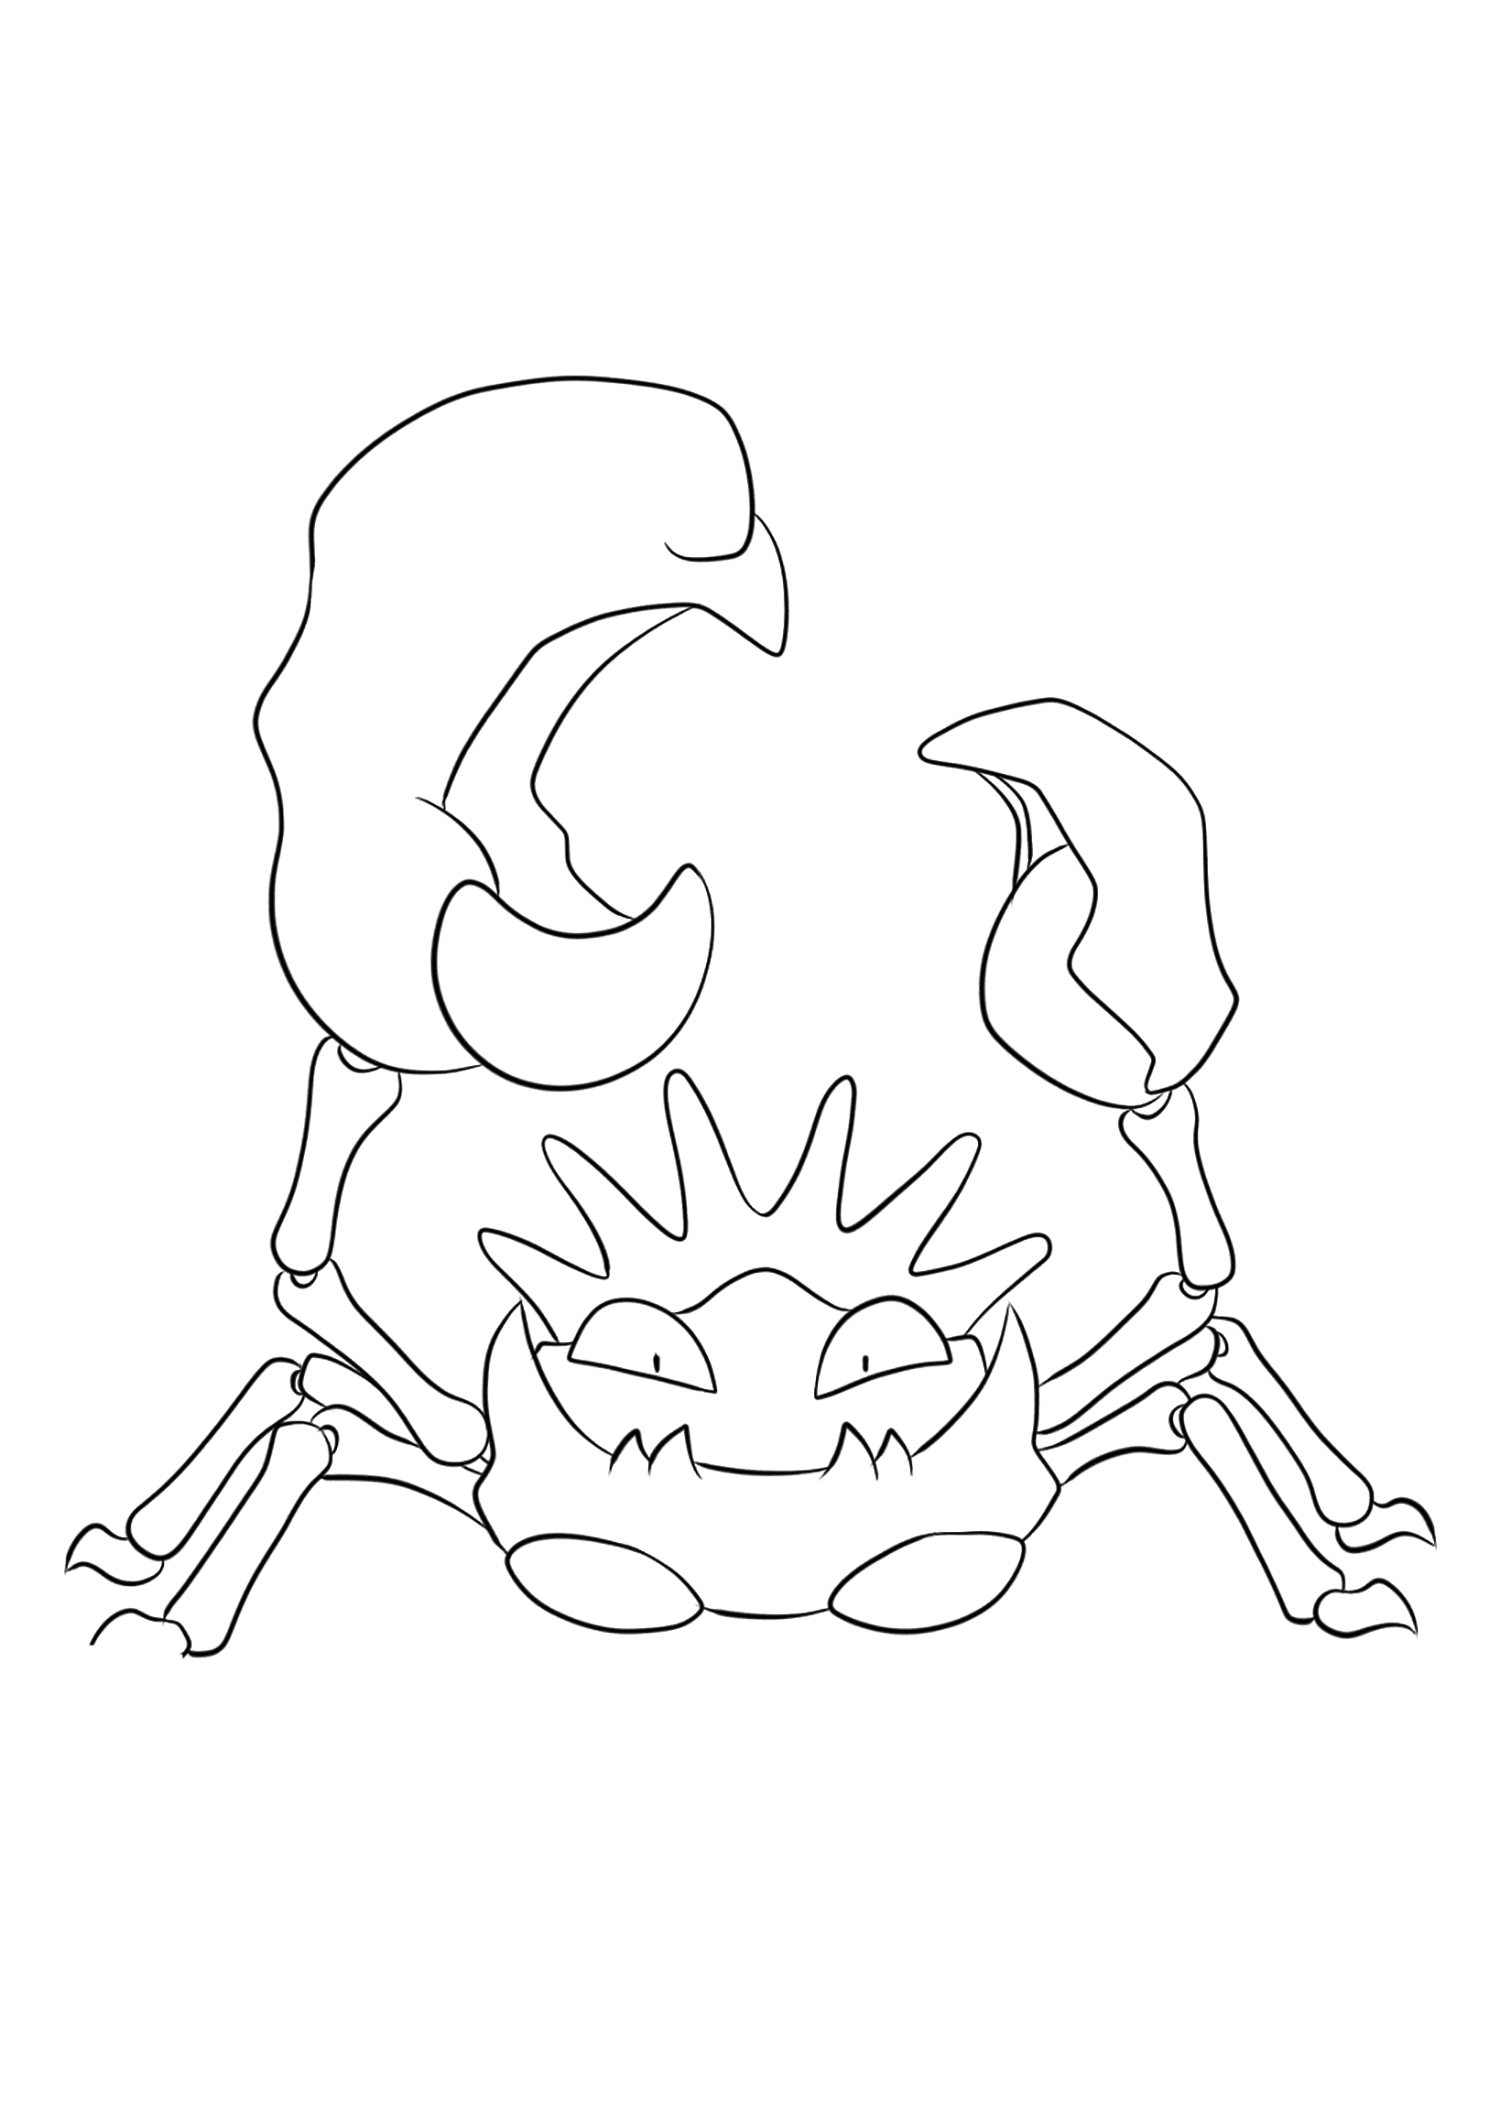 pokemon kingdra coloring pages kingler no99 pokemon generation i all pokemon pages pokemon kingdra coloring